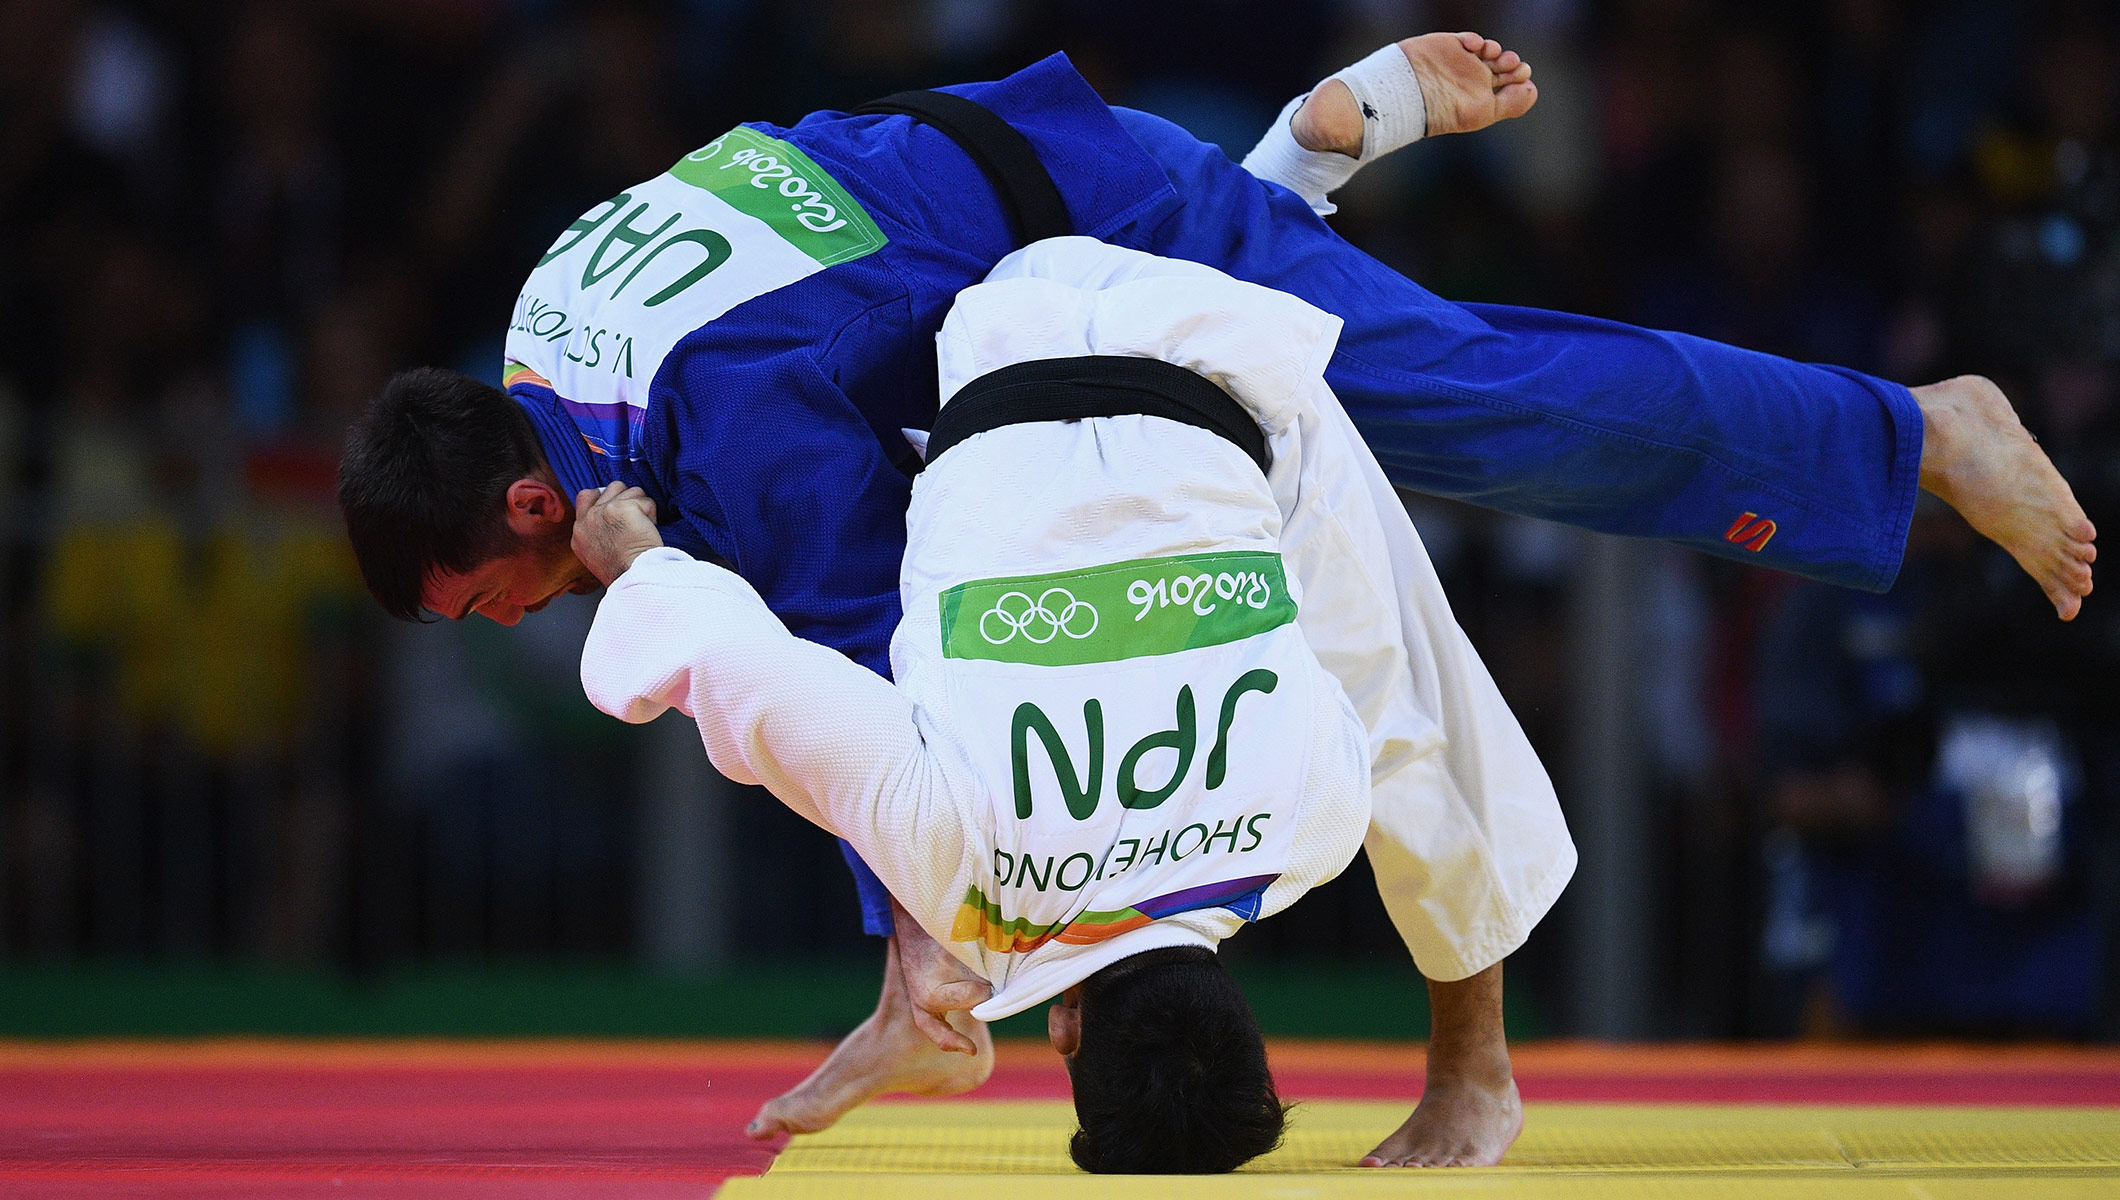 Judo casts a spell at Rio 2016 - Olympic News